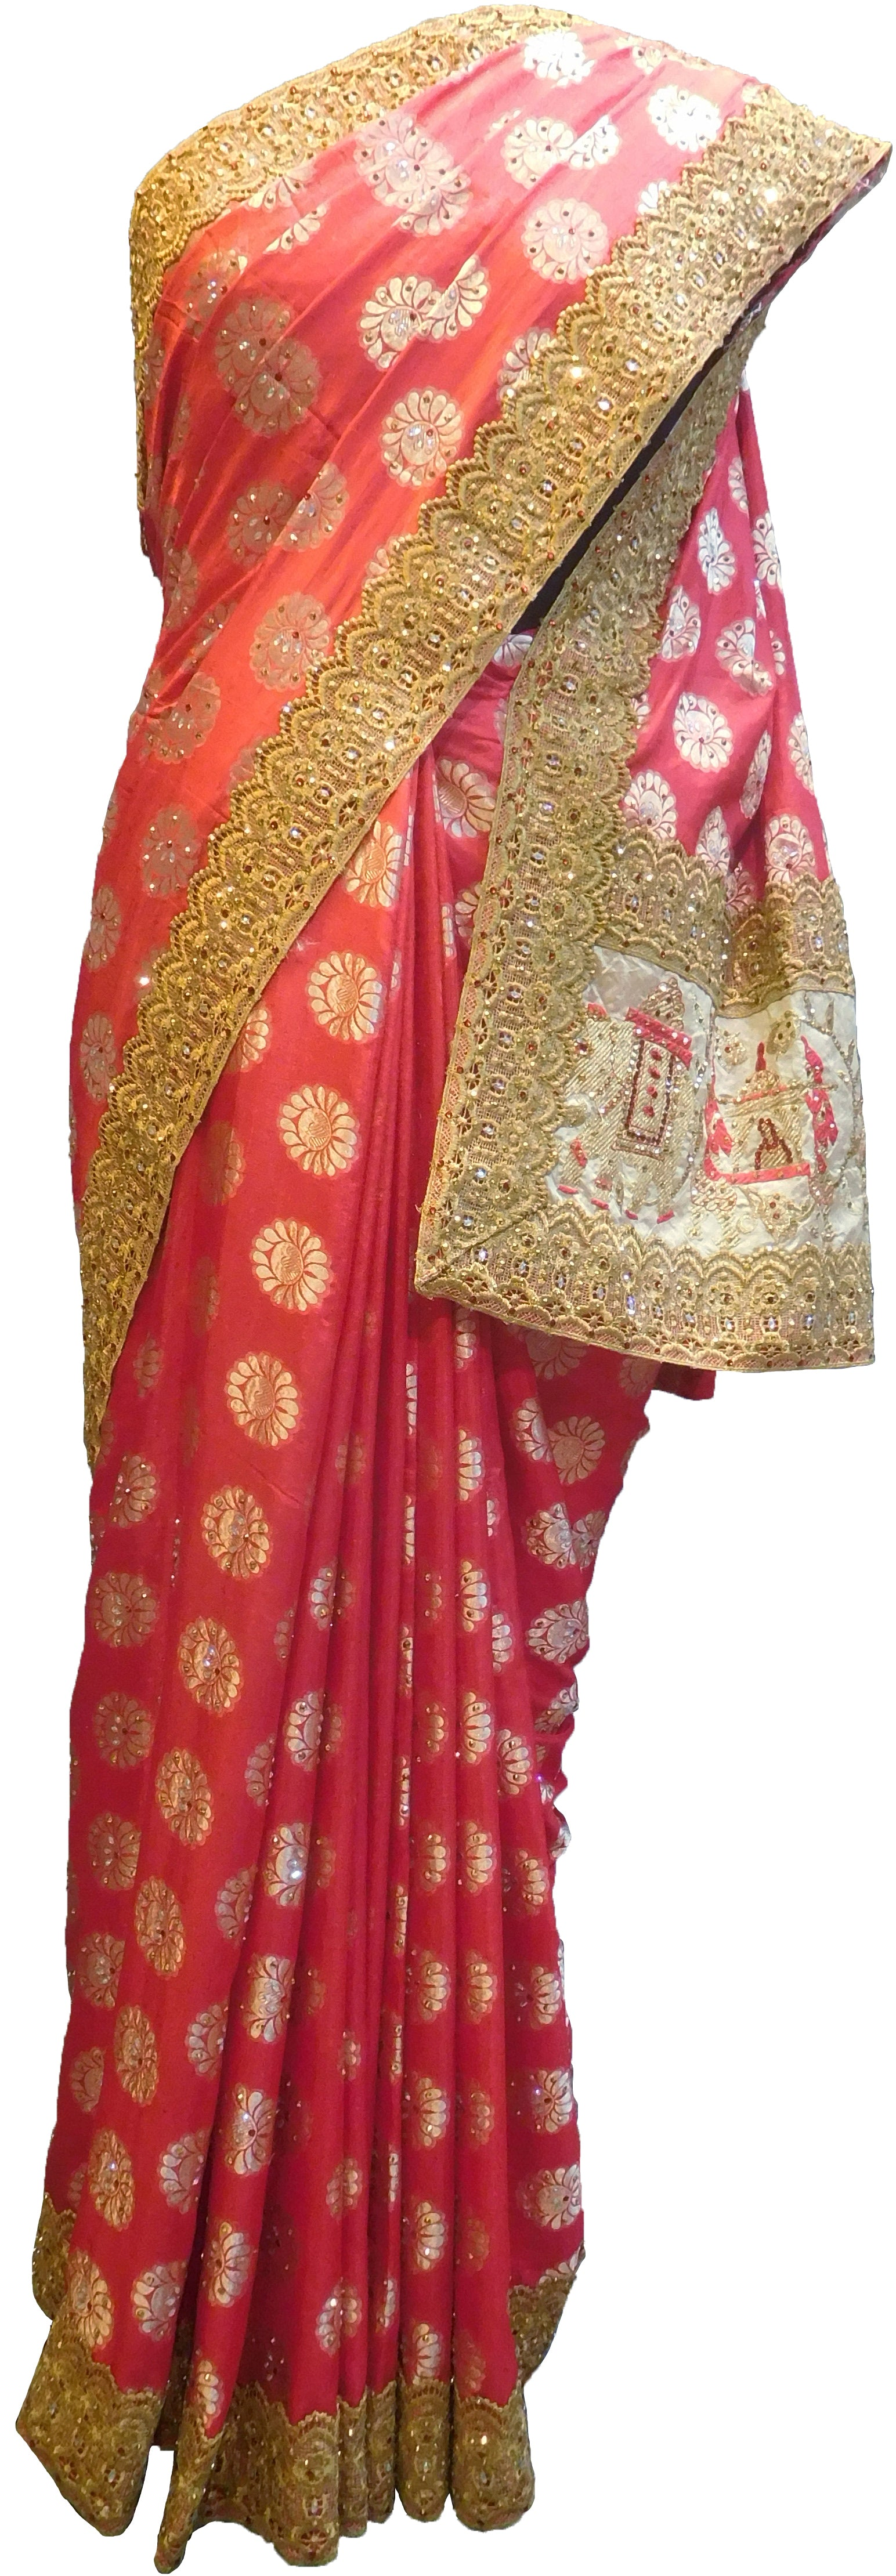 SMSAREE Red Designer Wedding Partywear Silk Stone Thread & Zari Hand Embroidery Work Bridal Saree Sari With Blouse Piece F400